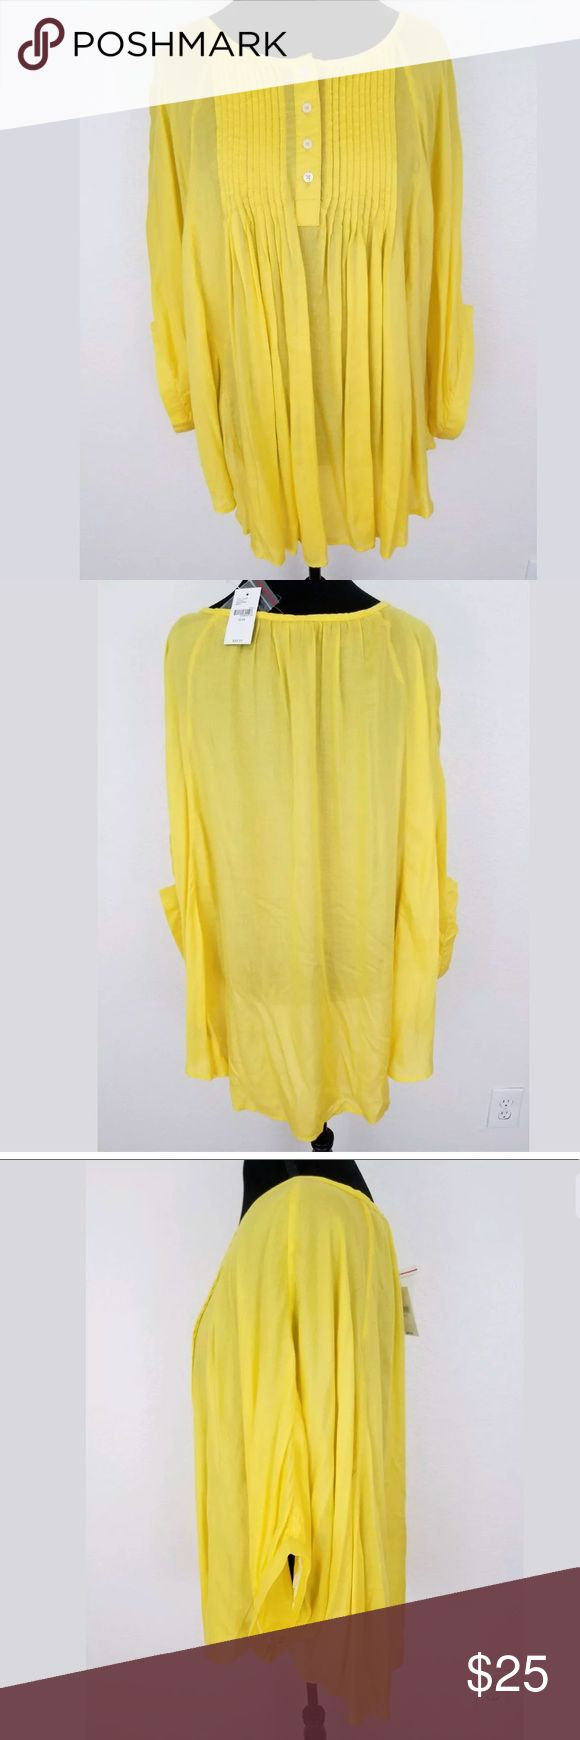 Lane Bryant 22/24 Yellow Poncho Batwing Top Blouse Lane Bryant 22/24 Poncho Batwing Top Blouse Plus size Yellow India Rayon NWT. Beautiful Plus Size Top!!! Lane Bryant Tops Blouses